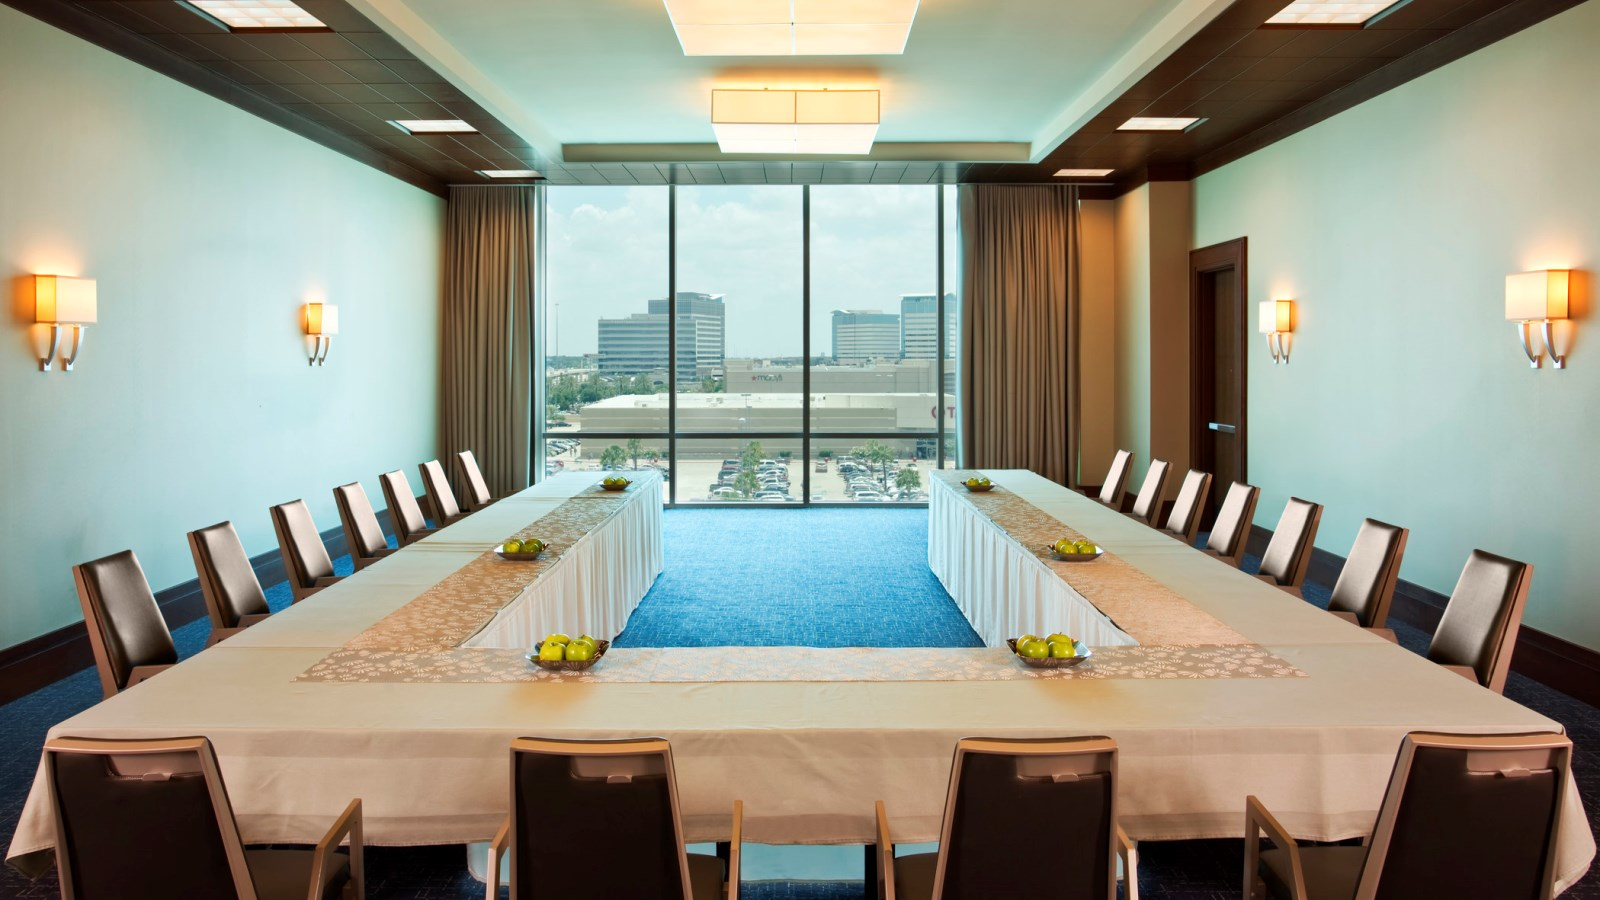 The view of Memorial City from the Cypress Room - Houston Meetings & Events Venues.